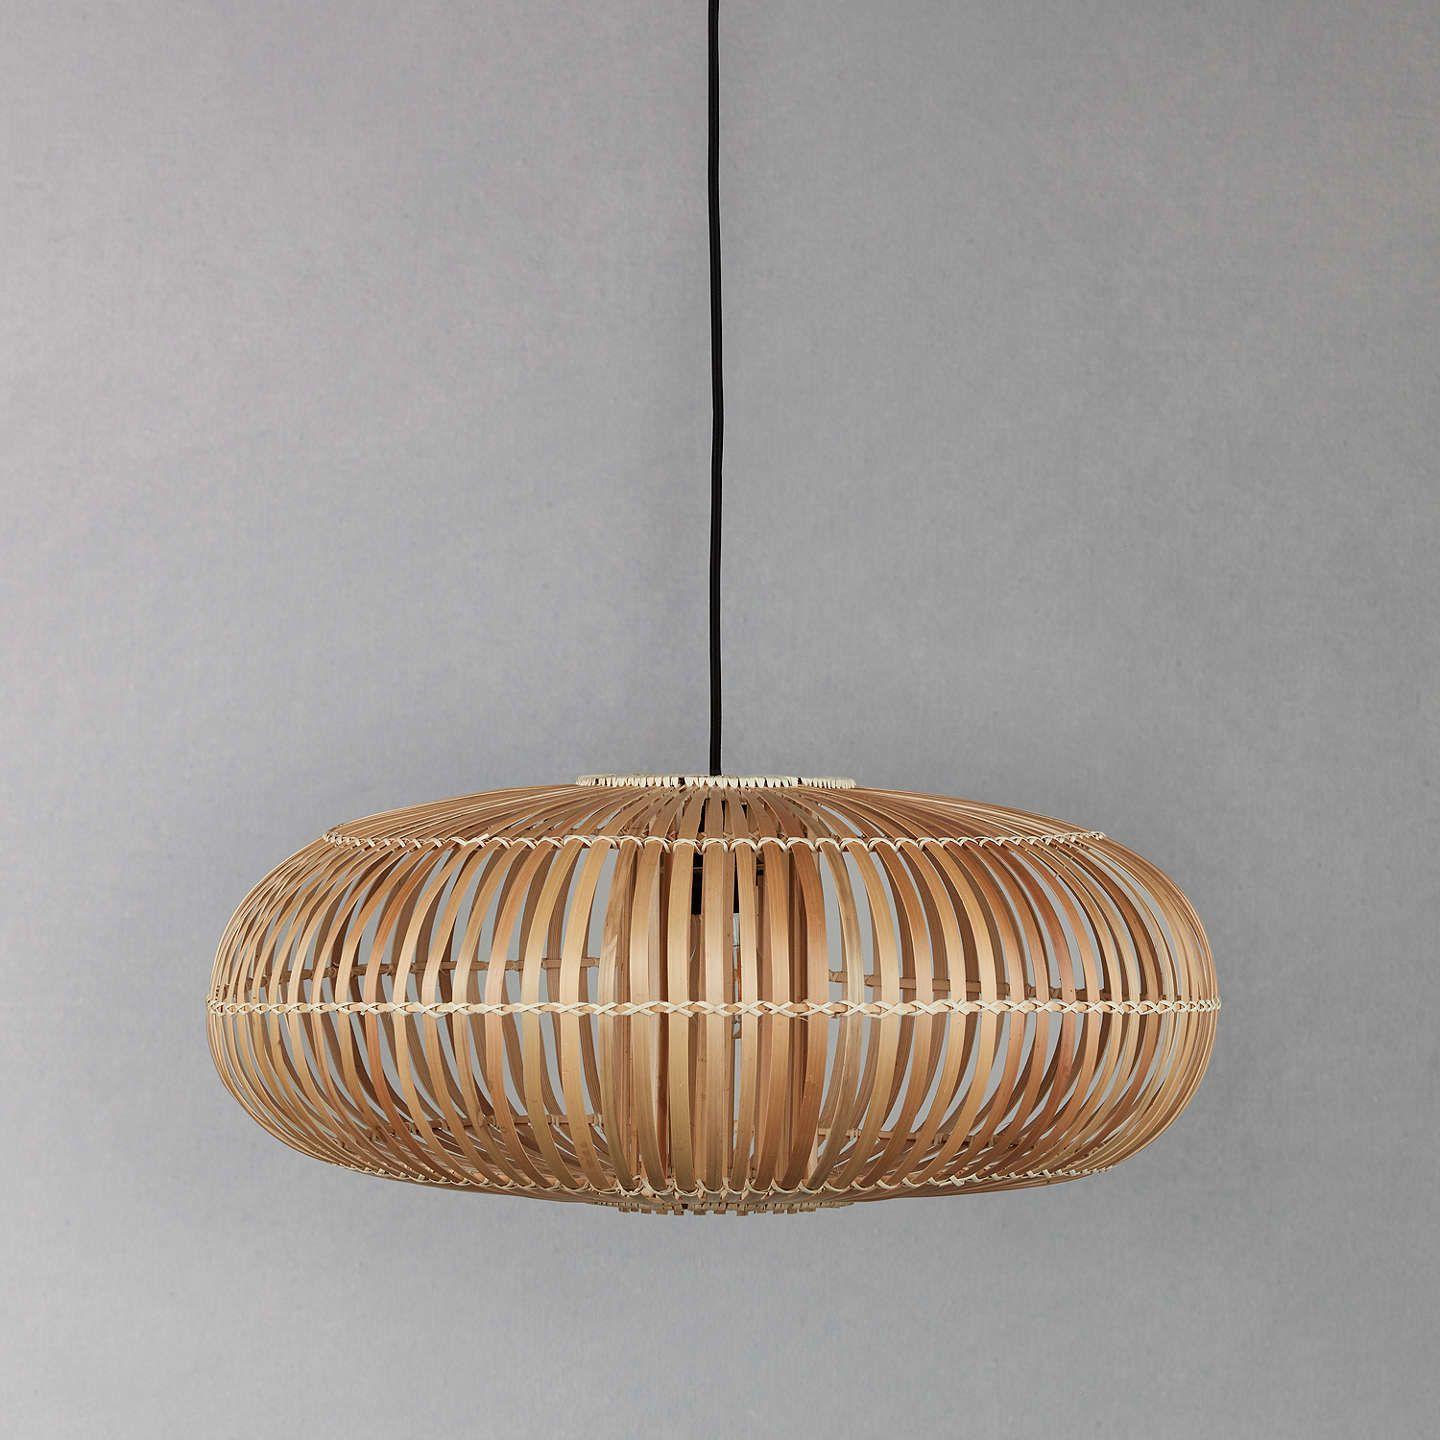 Buyjohn Lewis Talia Bamboo Rattan Ceiling Light Natural Online At Johnlewis Com Ceiling Lights Bamboo Ceiling Rattan